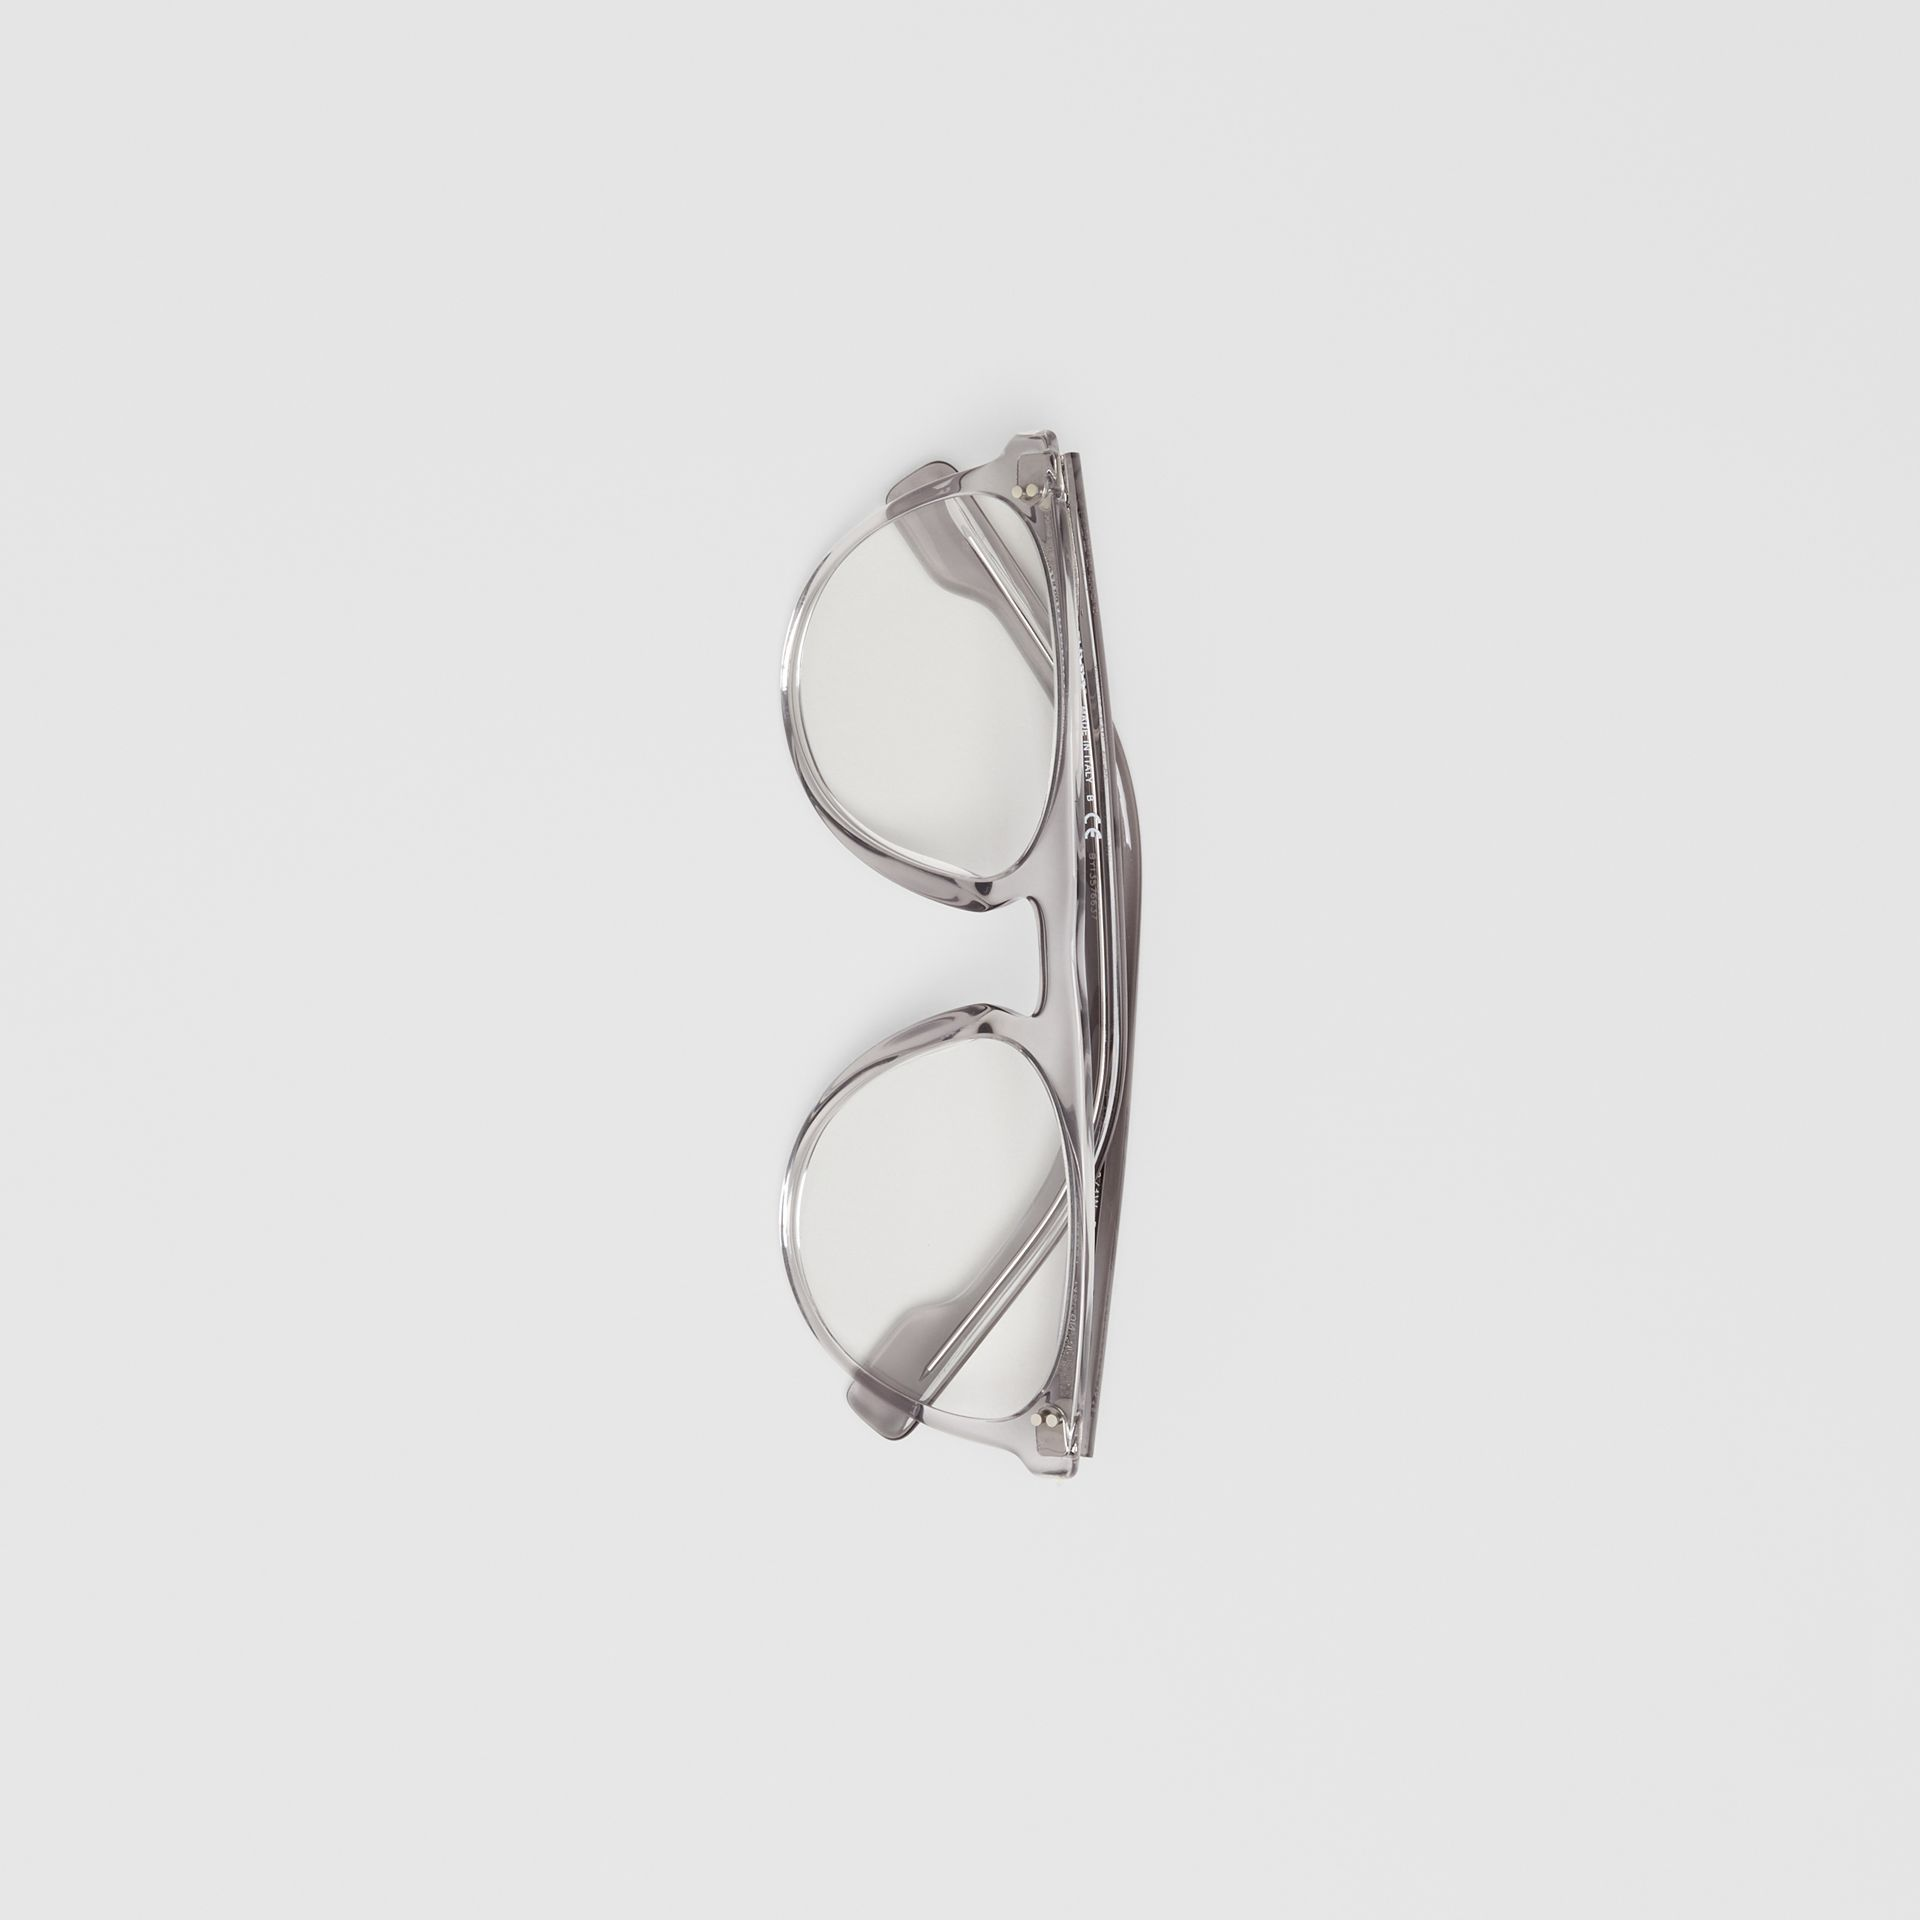 Keyhole D-shaped Optical Frames in Grey - Men | Burberry - gallery image 3